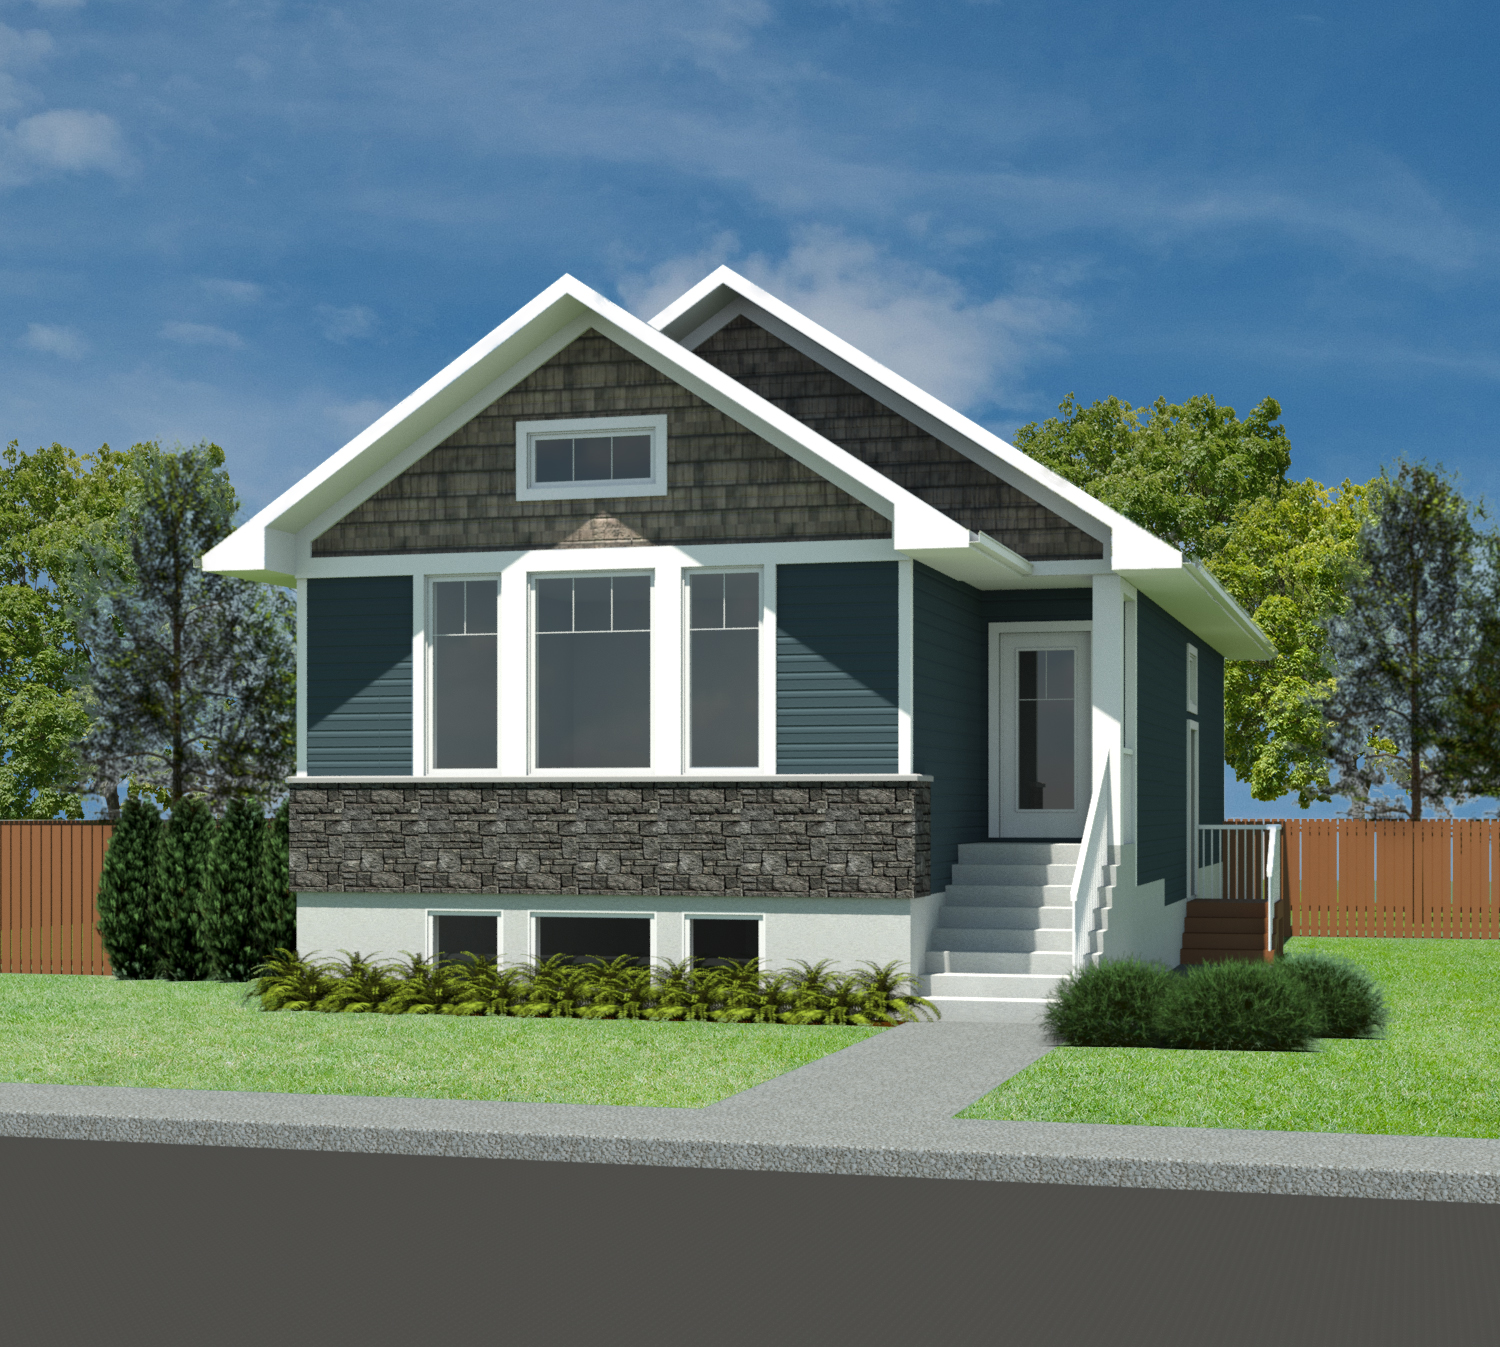 Tiny Home Designs: Craftsman Linden-1073